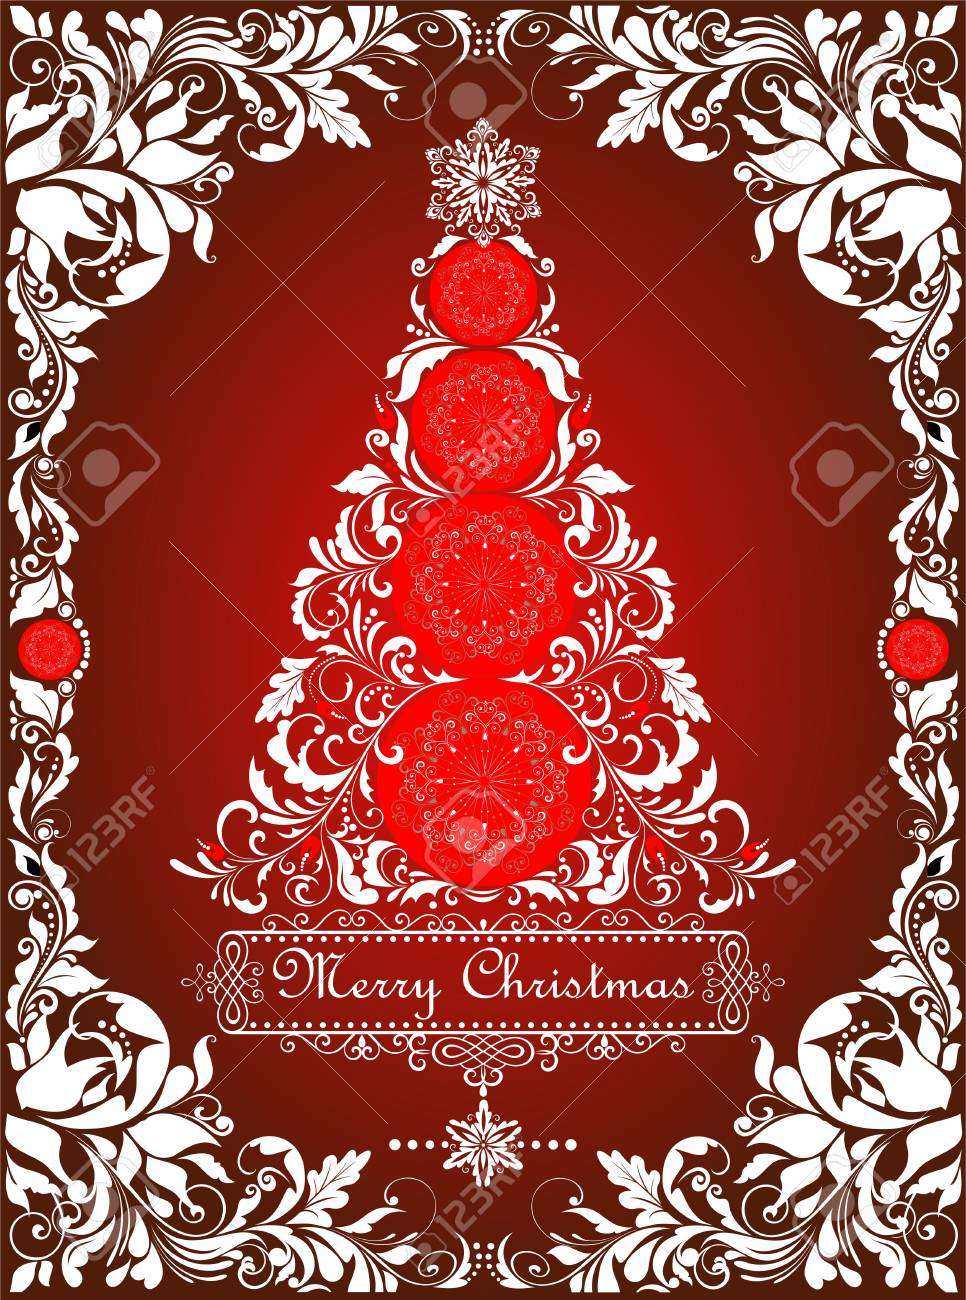 Red Vintage Christmas Card With Cut Out Paper Christmas Tree Royalty Free Cliparts Vectors And Stock Illustration Image 93783528